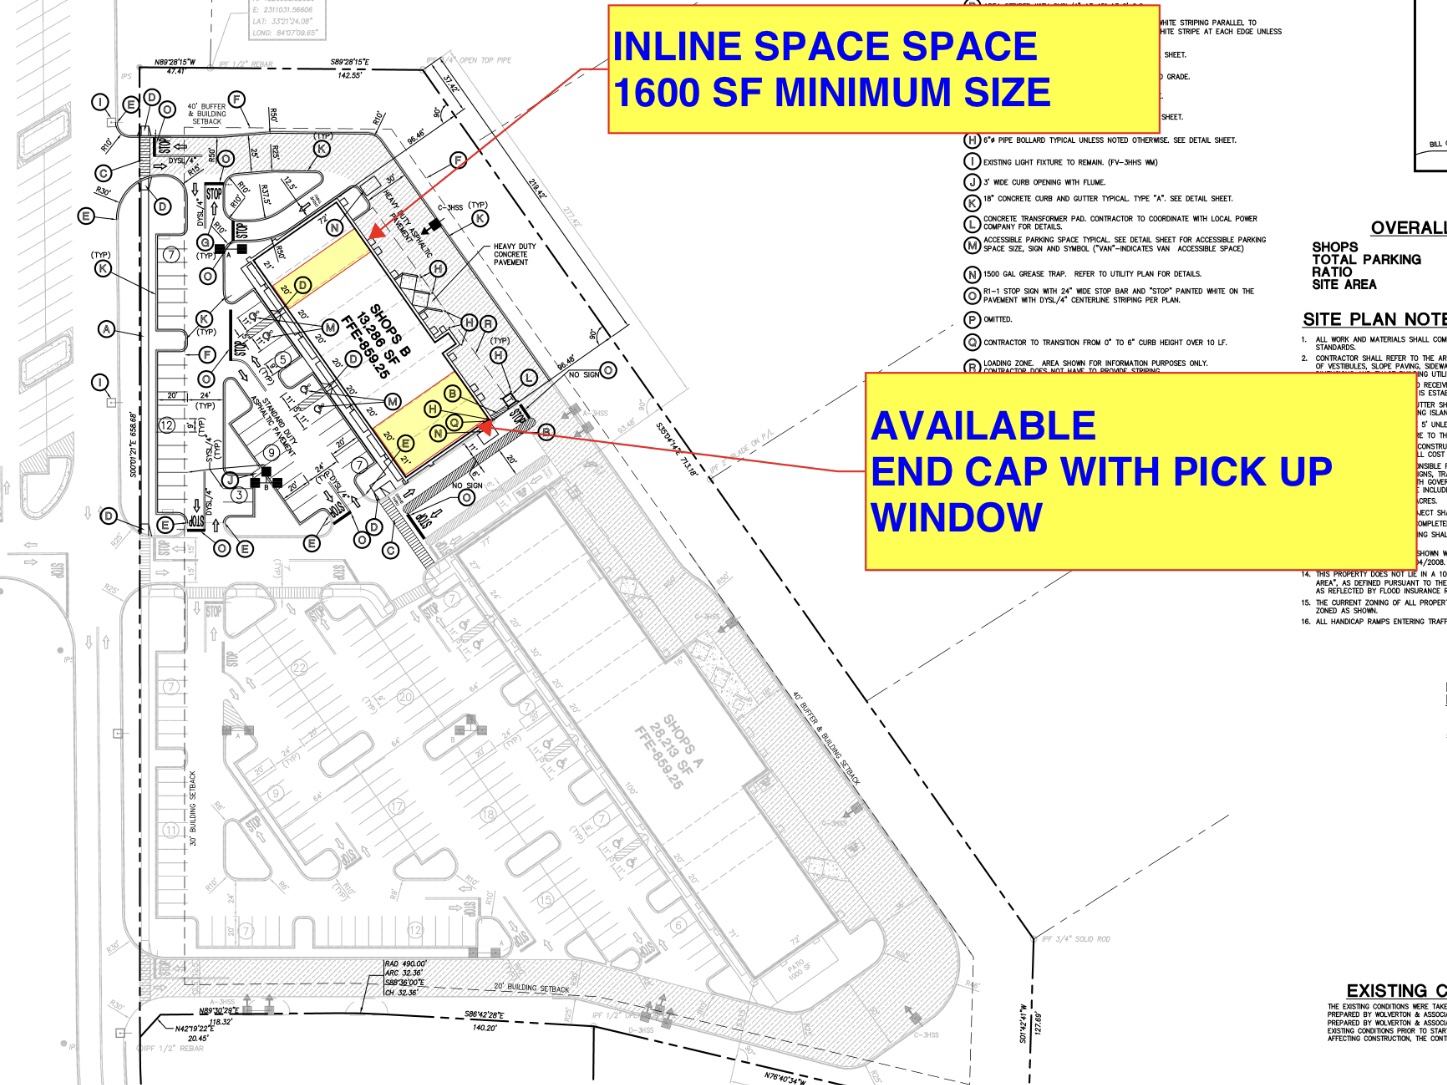 Site plan for The Marketplace at Locust Grove Shops (Wolverton & Associates photo)